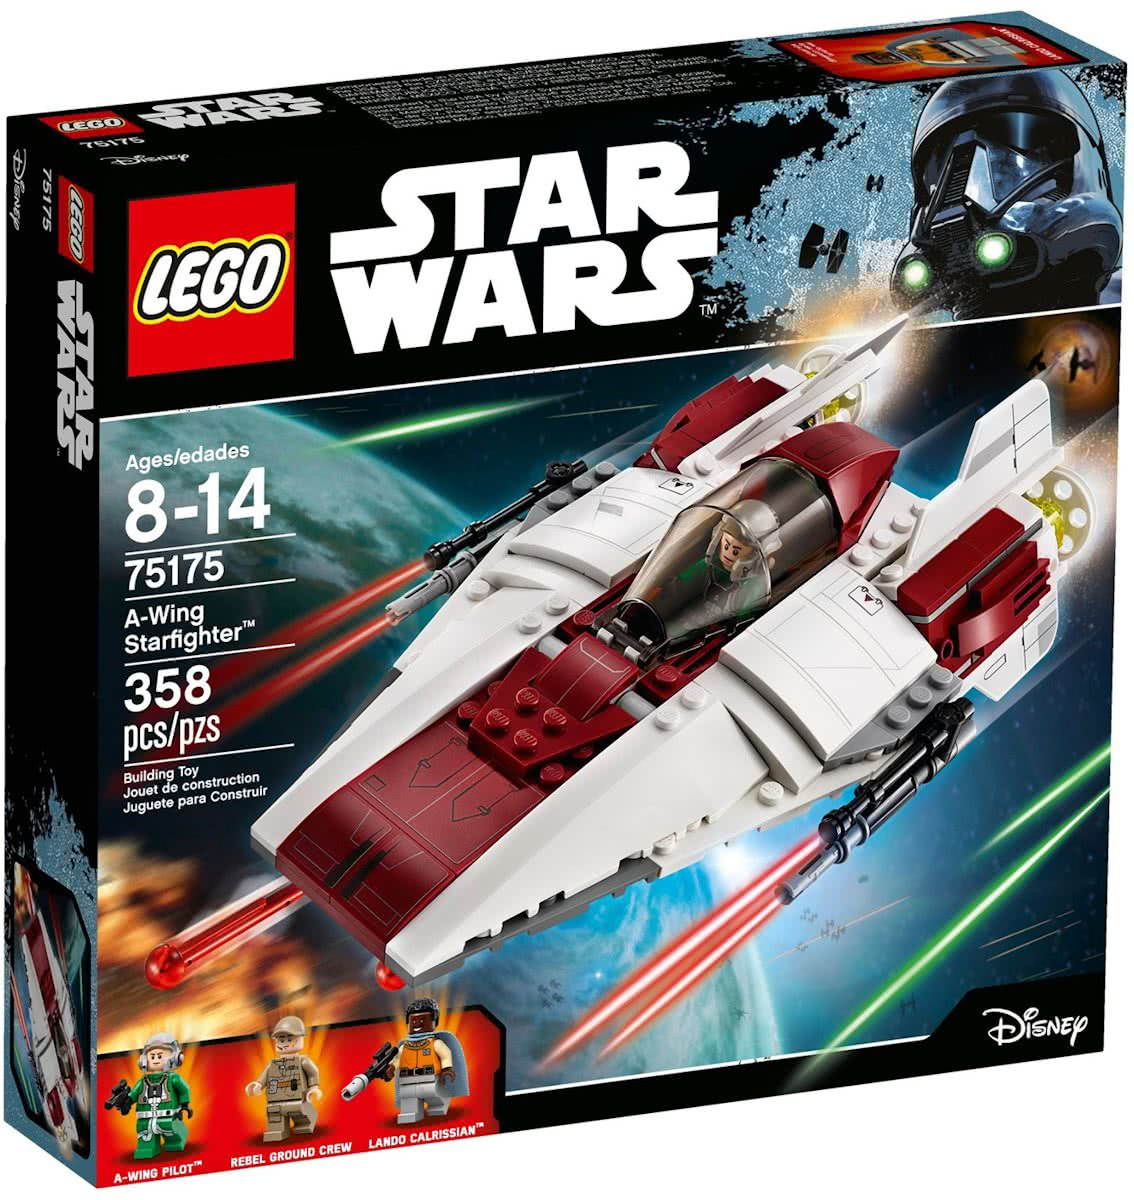 LEGO Star Wars A-Wing Starfighter - 75175